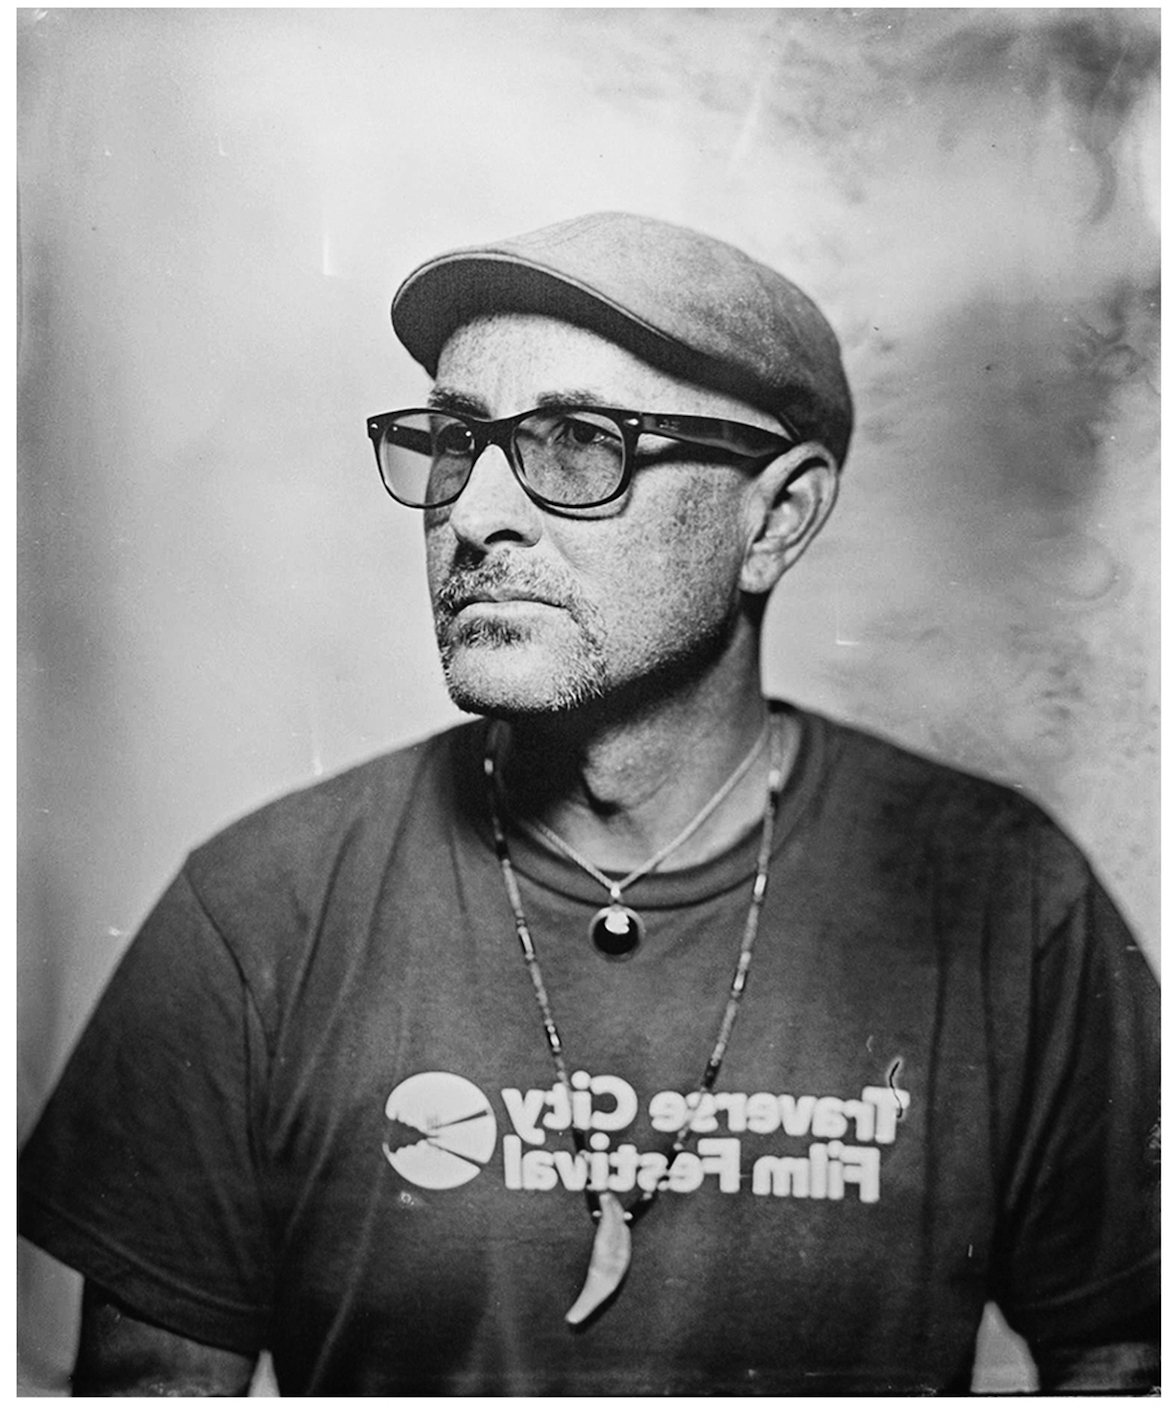 Tintype of Jeff Howlett, taken by Chris Morgan